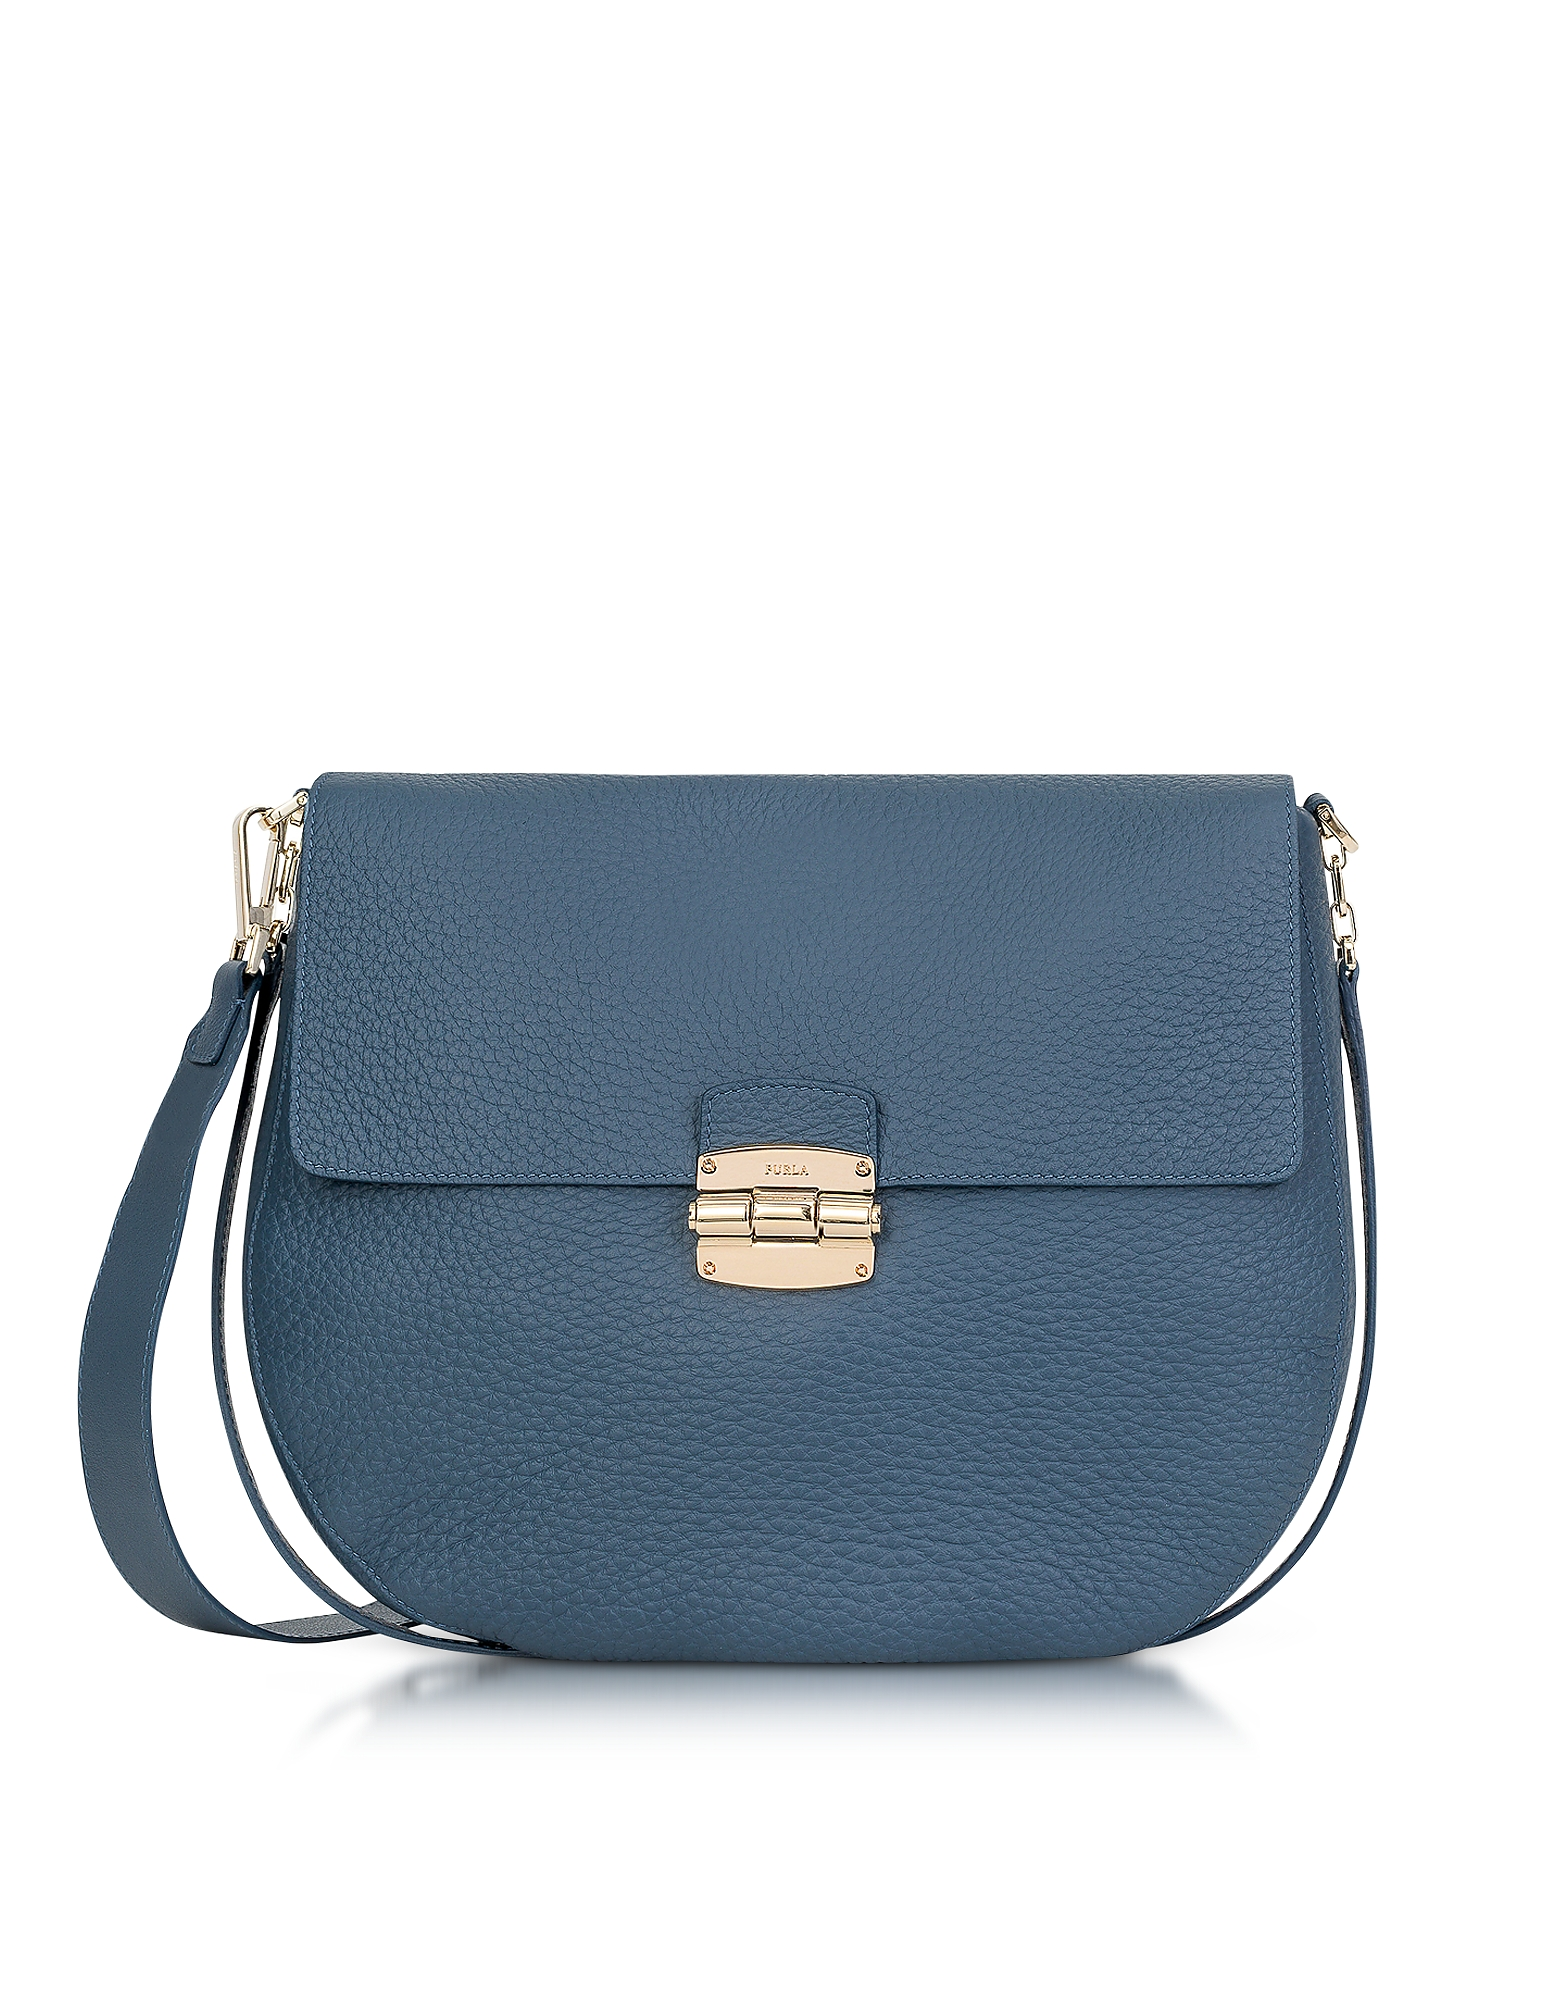 Furla Handbags, Club M Dark Avion Leather Crossbody Bag